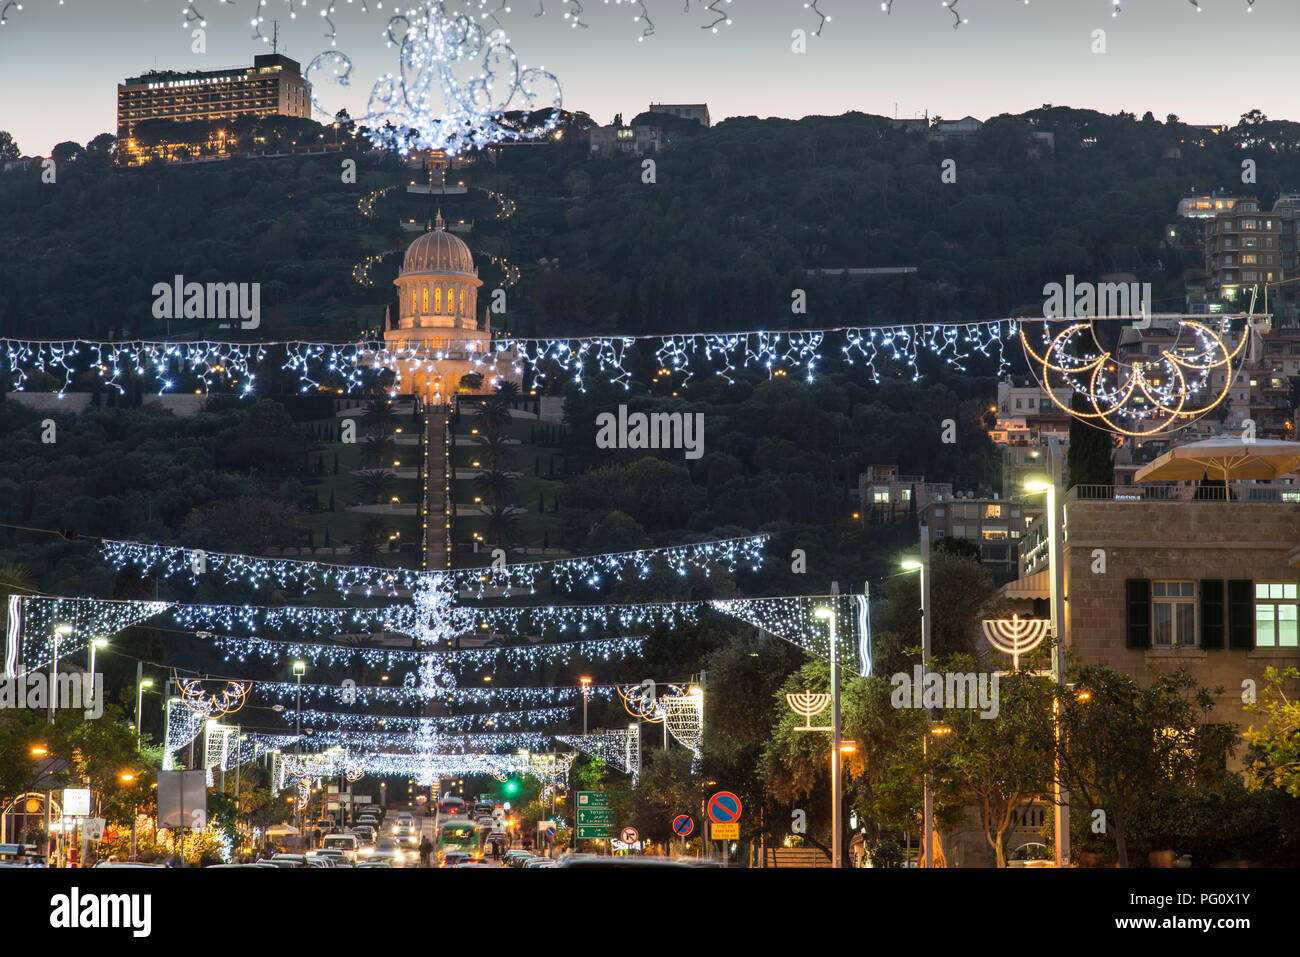 Haifa, Israel - December 11, 2015 : the Bahai gardens in The German Colony decorated for the holidays, in Haifa, Israel - Stock Image